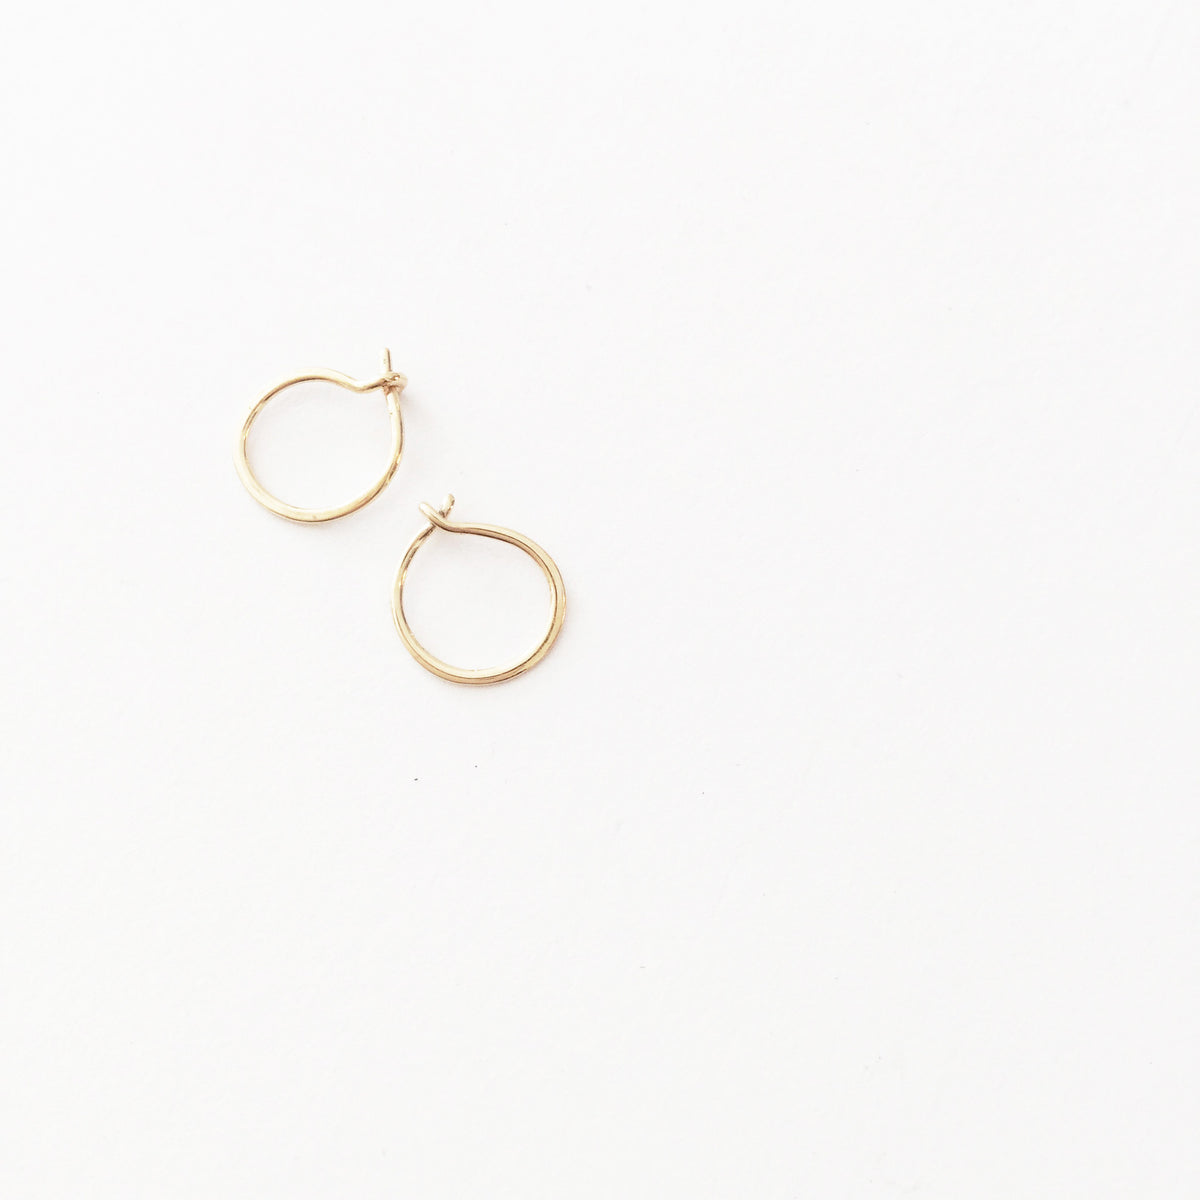 Tiny Hoop Earring - Pair (5609989895)